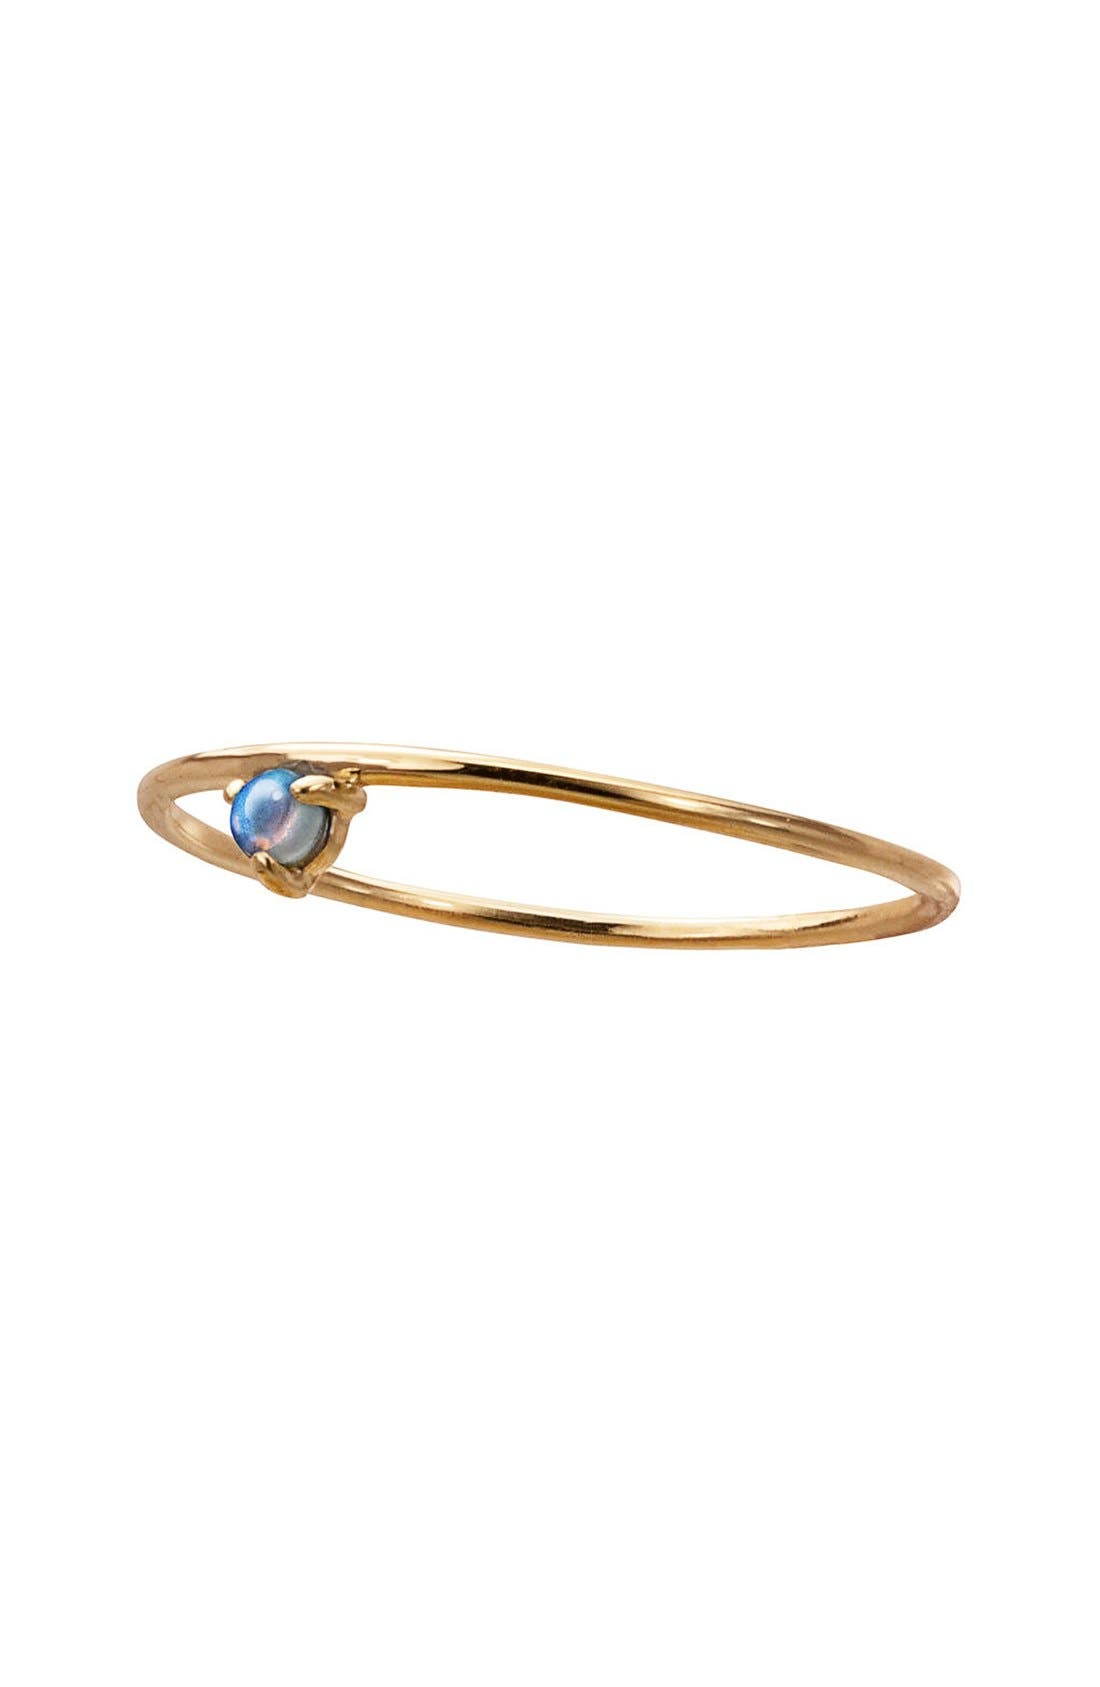 Counting Collection One-Step Opal Ring,                             Alternate thumbnail 4, color,                             YELLOW GOLD